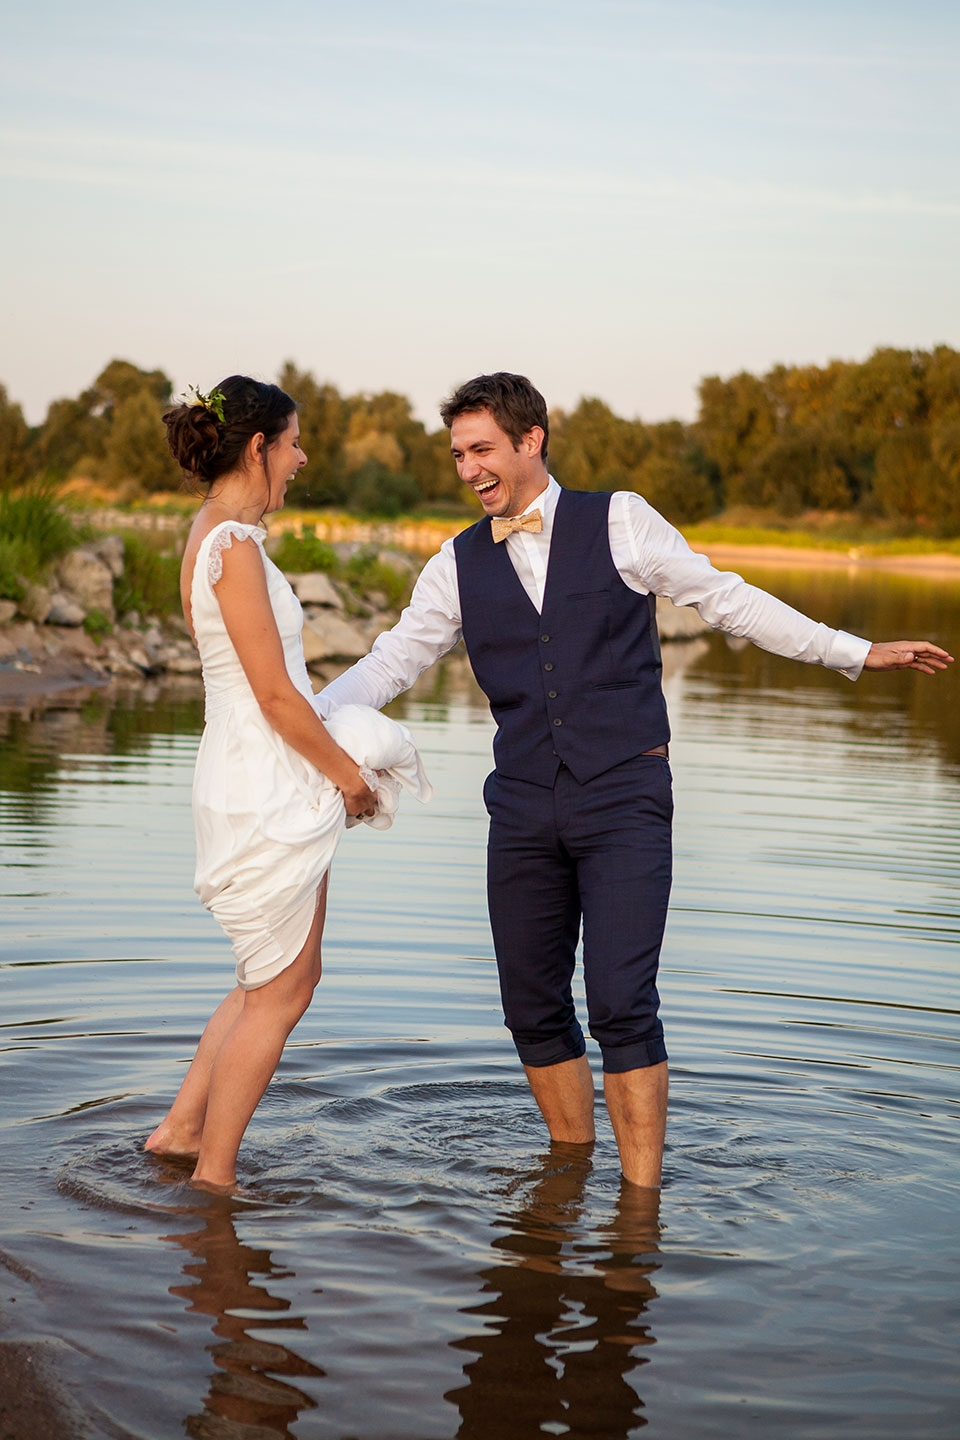 particuliers-evenements-mariage-oui-elise&quentin-77